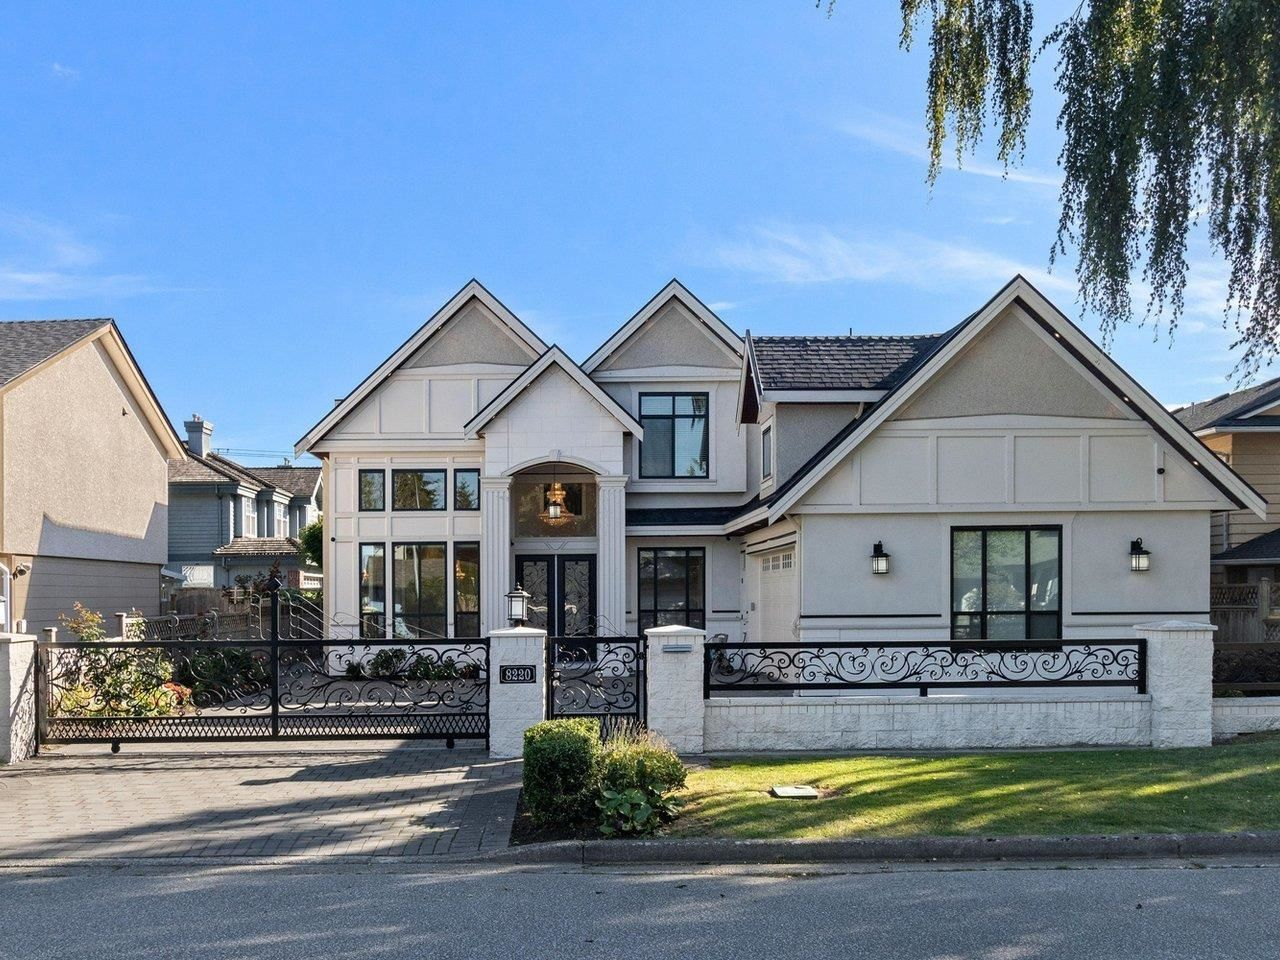 Main Photo: 8220 ROSEBANK Crescent in Richmond: South Arm House for sale : MLS®# R2615703